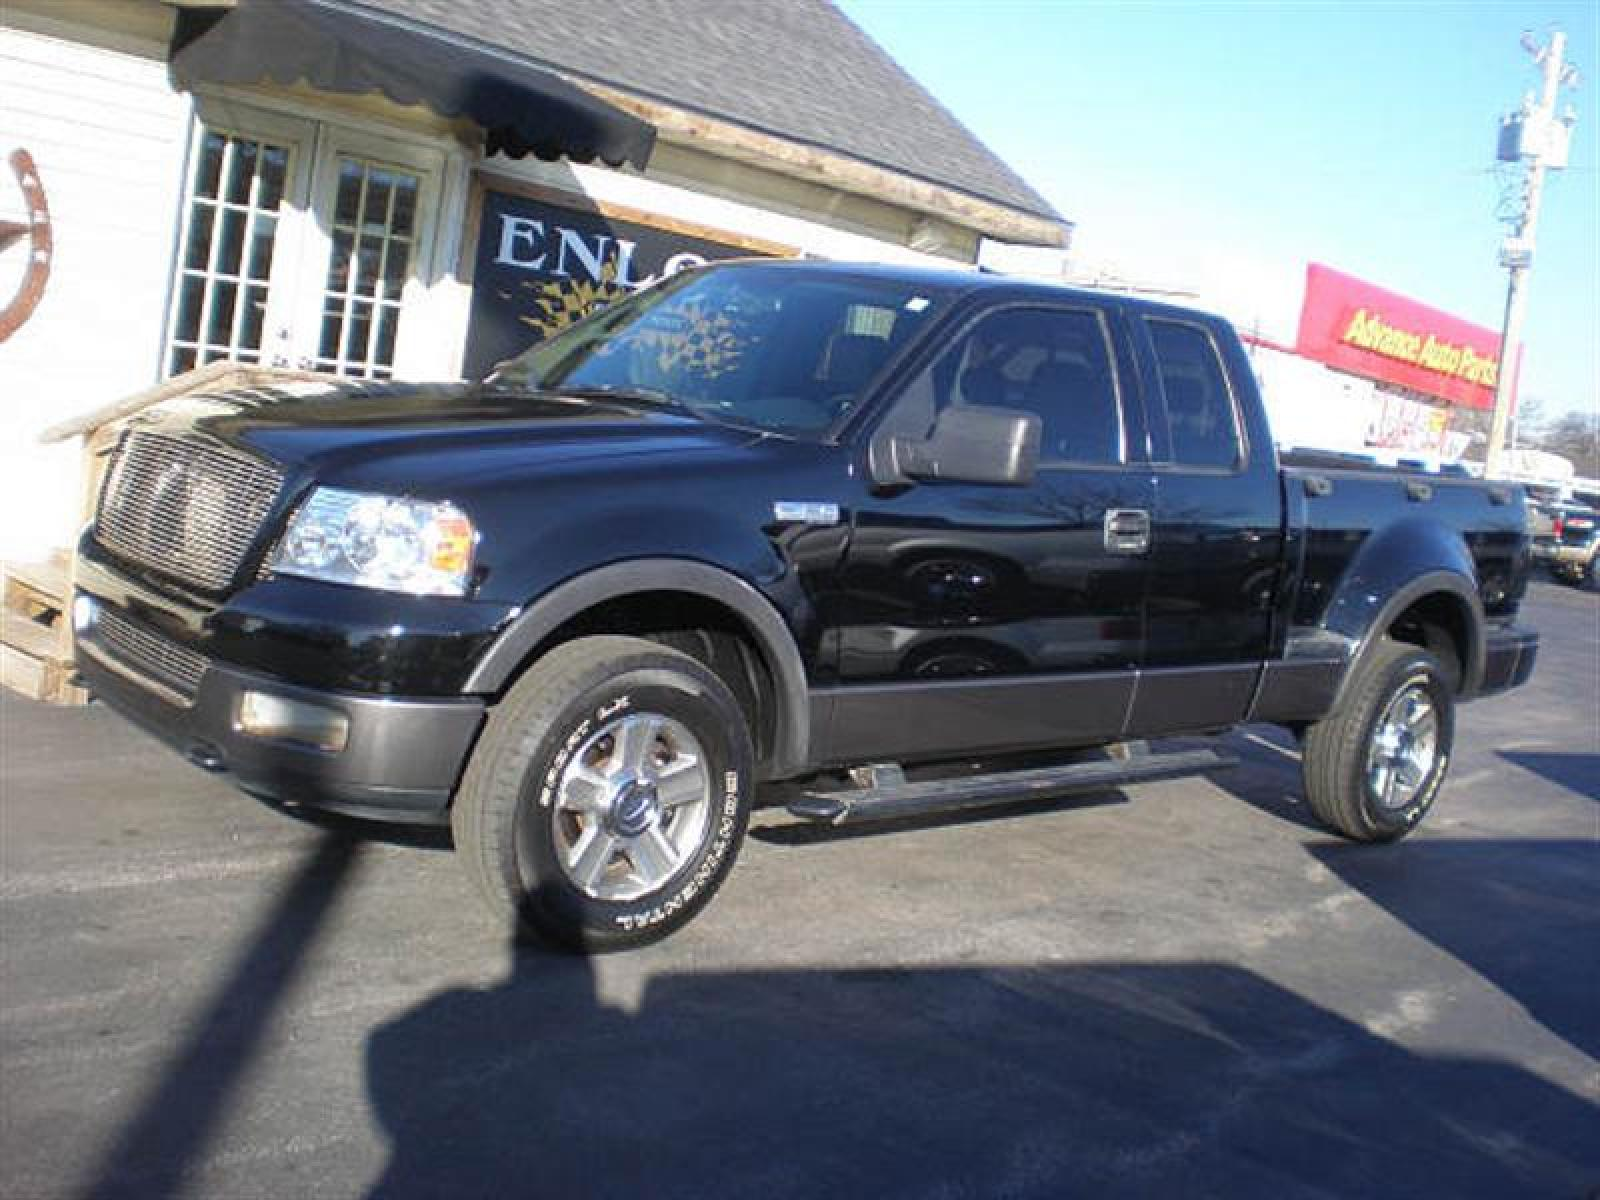 2004 Ford F 150 Information And Photos Zombiedrive Xl Supercab 800 1024 1280 1600 Origin